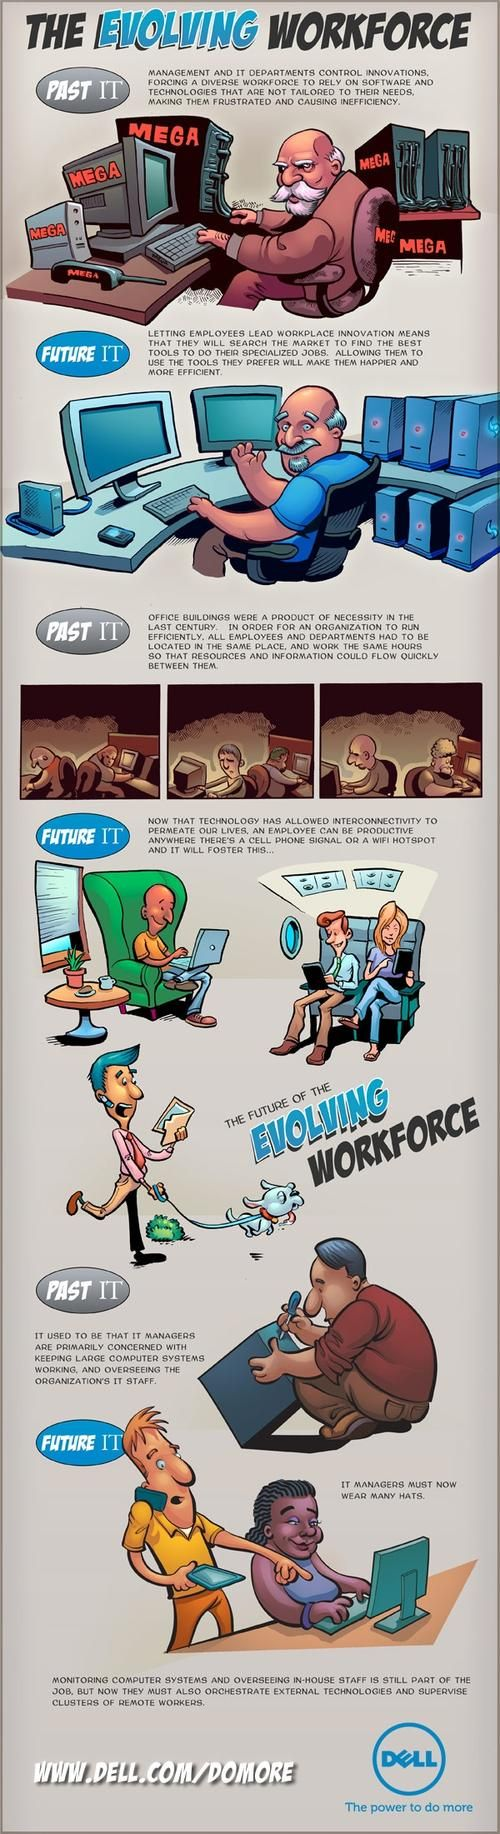 Most homes have an office and it can be frustrating when you can t - The Evolving Workforce Infographic The Office Ain T What It Used To Be